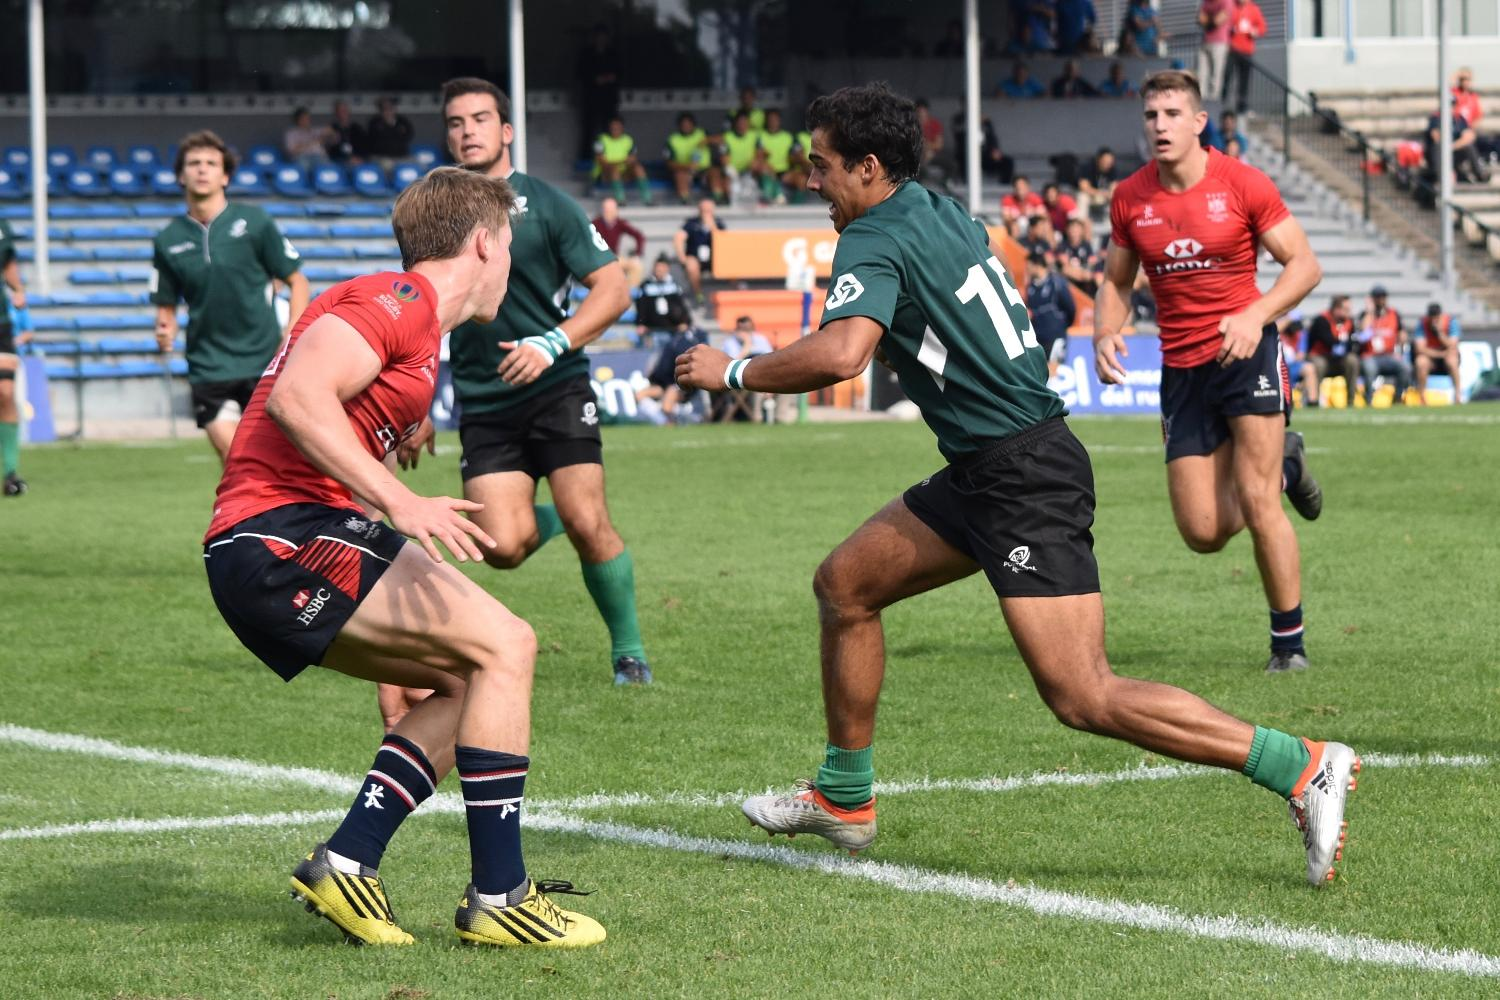 World Rugby U20 Trophy 2017: Portugal v Hong Kong